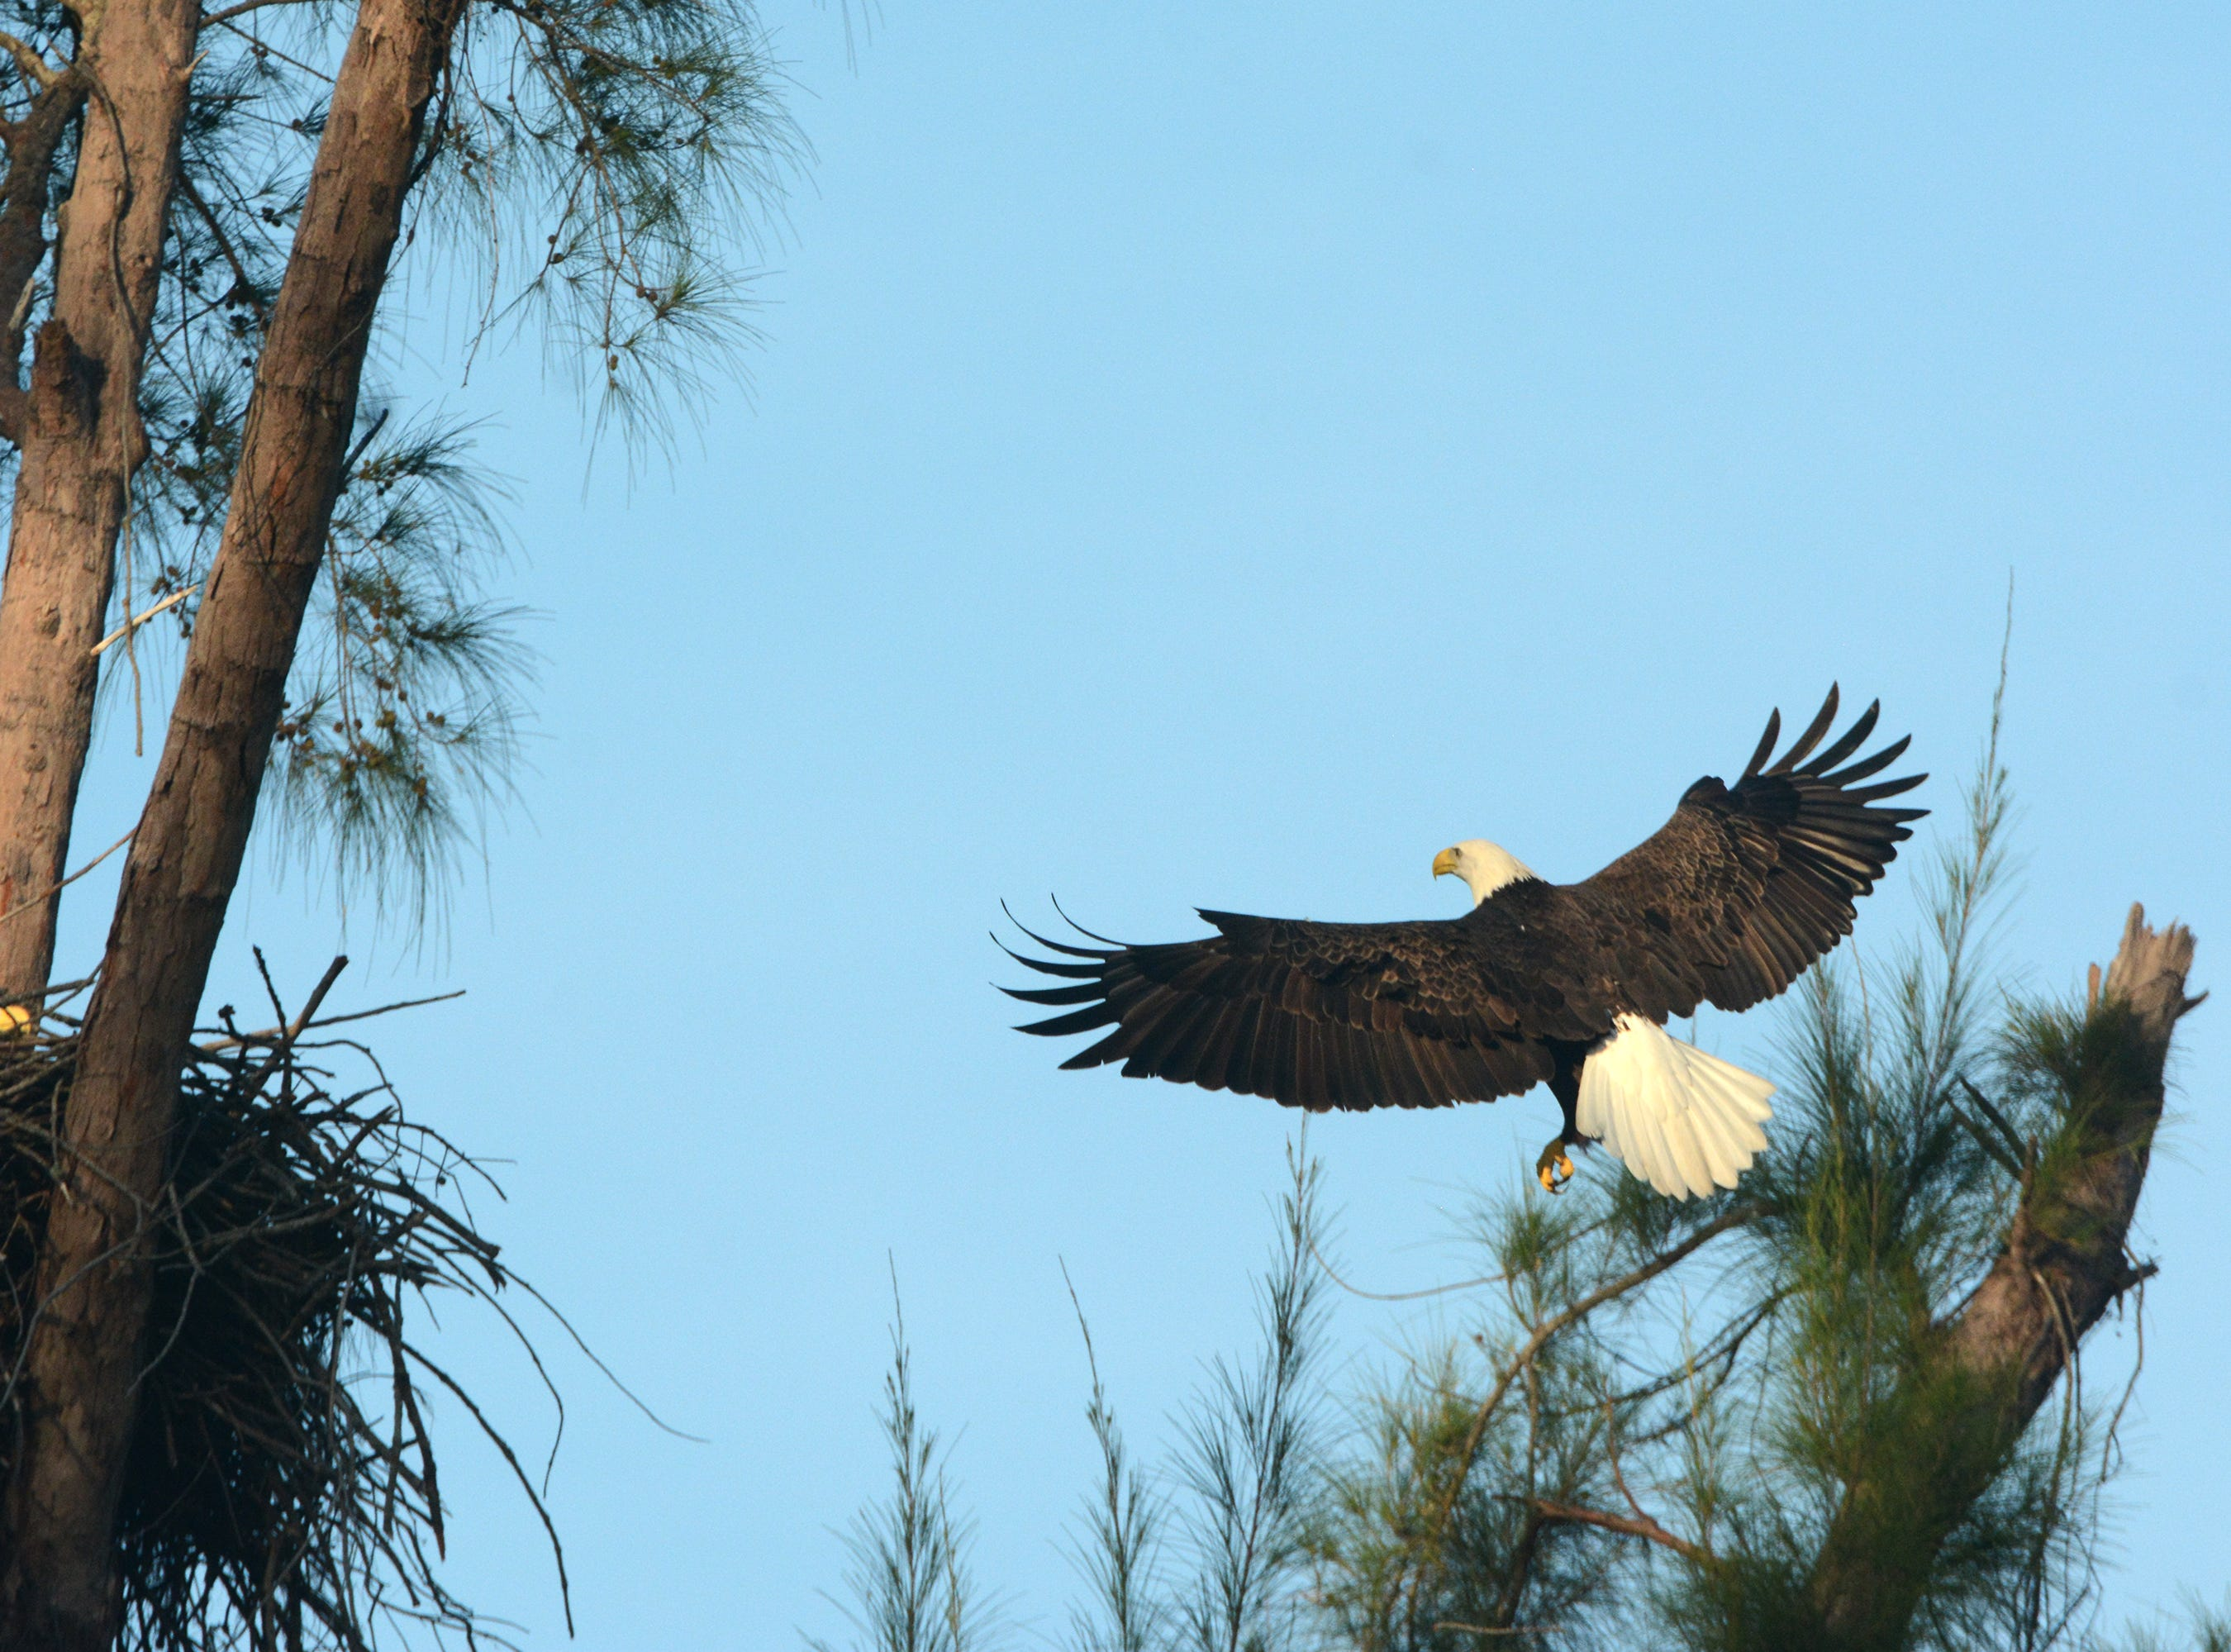 A bird returns to the nest with another stick for building. The Eagle Cam at the Marco Island Nature Preserve and Bird Sanctuary is live, just in time to watch a pair of eagles renovating the treetop nest.